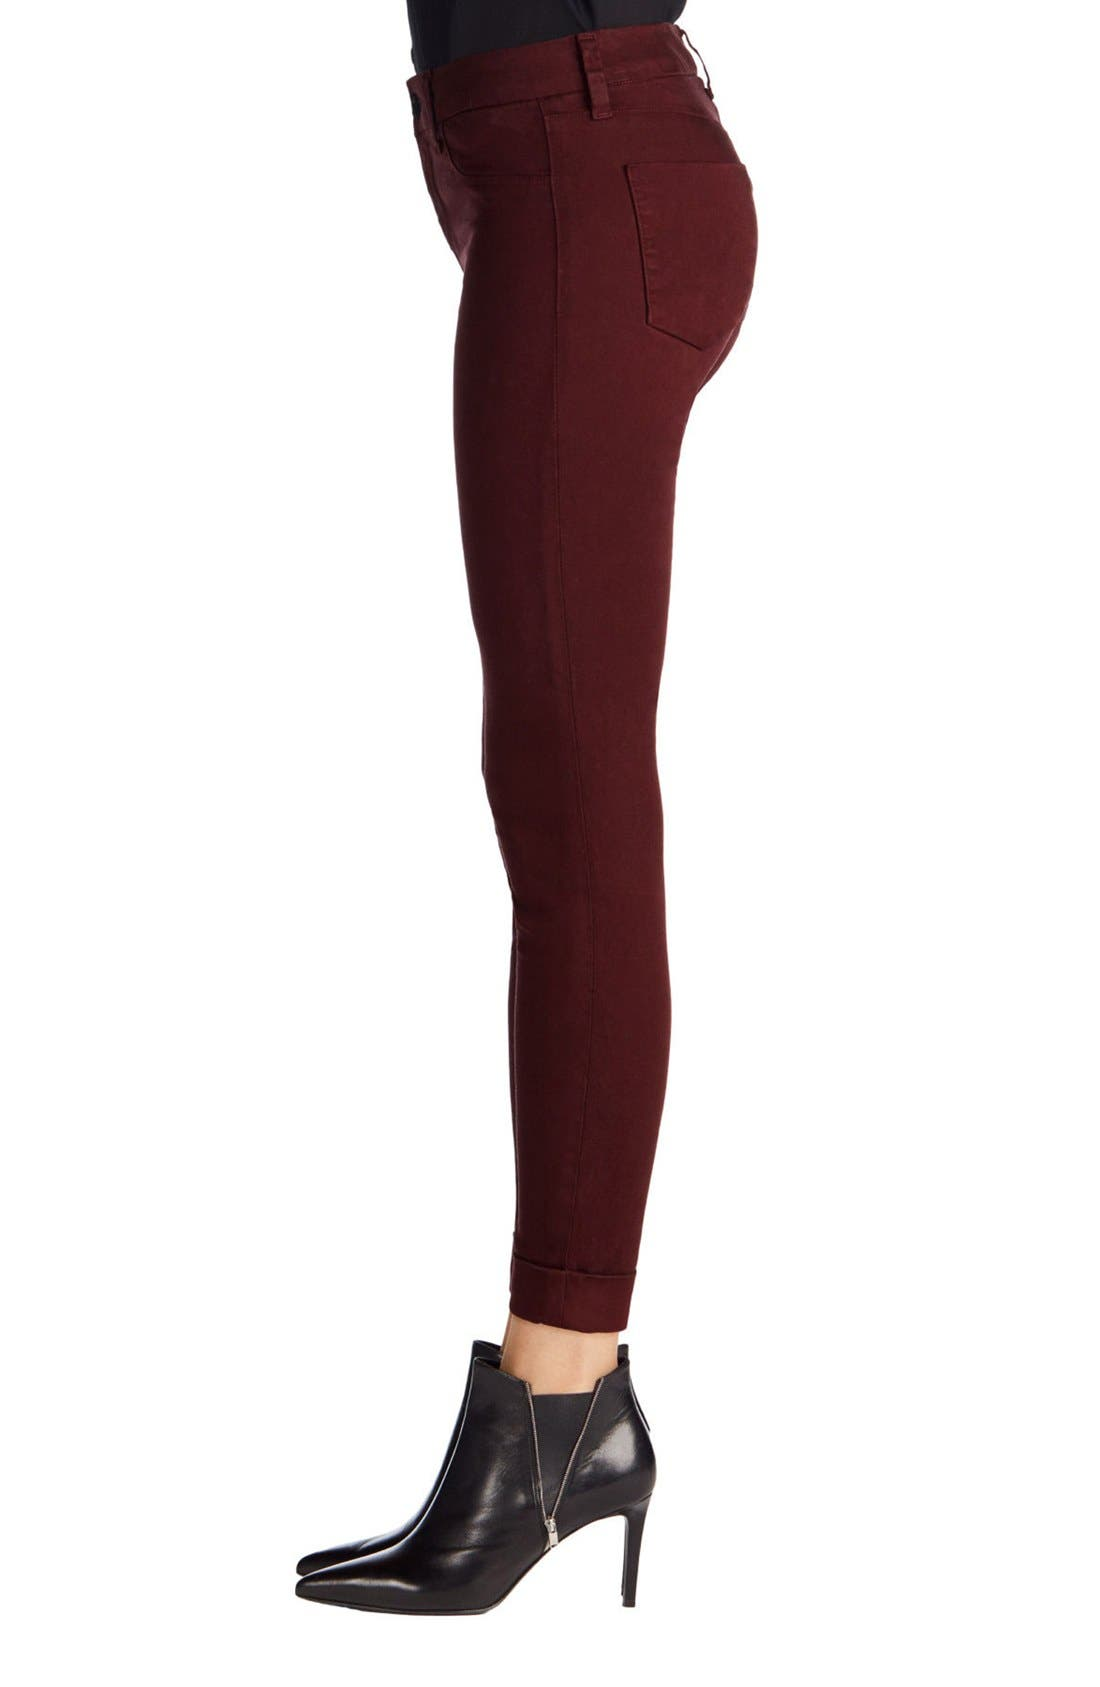 'Anja' Cuffed Crop Skinny Jeans,                             Alternate thumbnail 27, color,